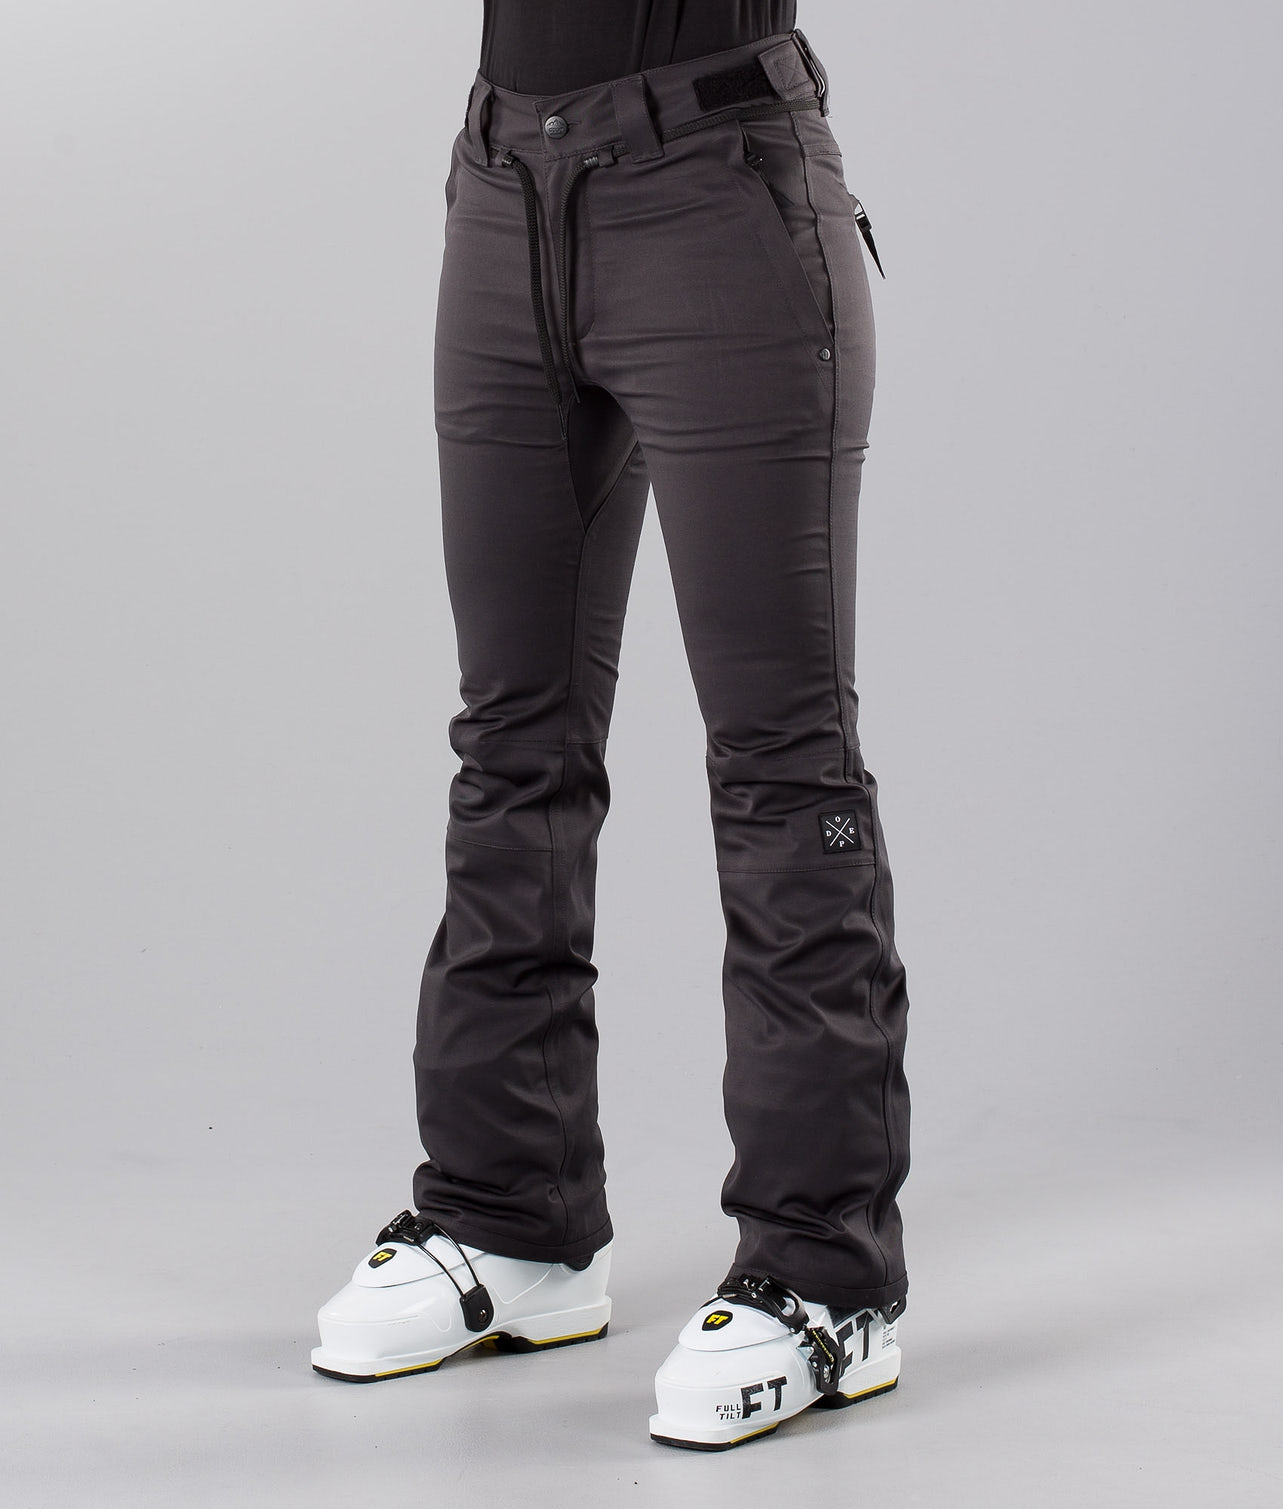 Buy Tigress 18 Ski Pants from Dope at Ridestore.com - Always free shipping, free returns and 30 days money back guarantee